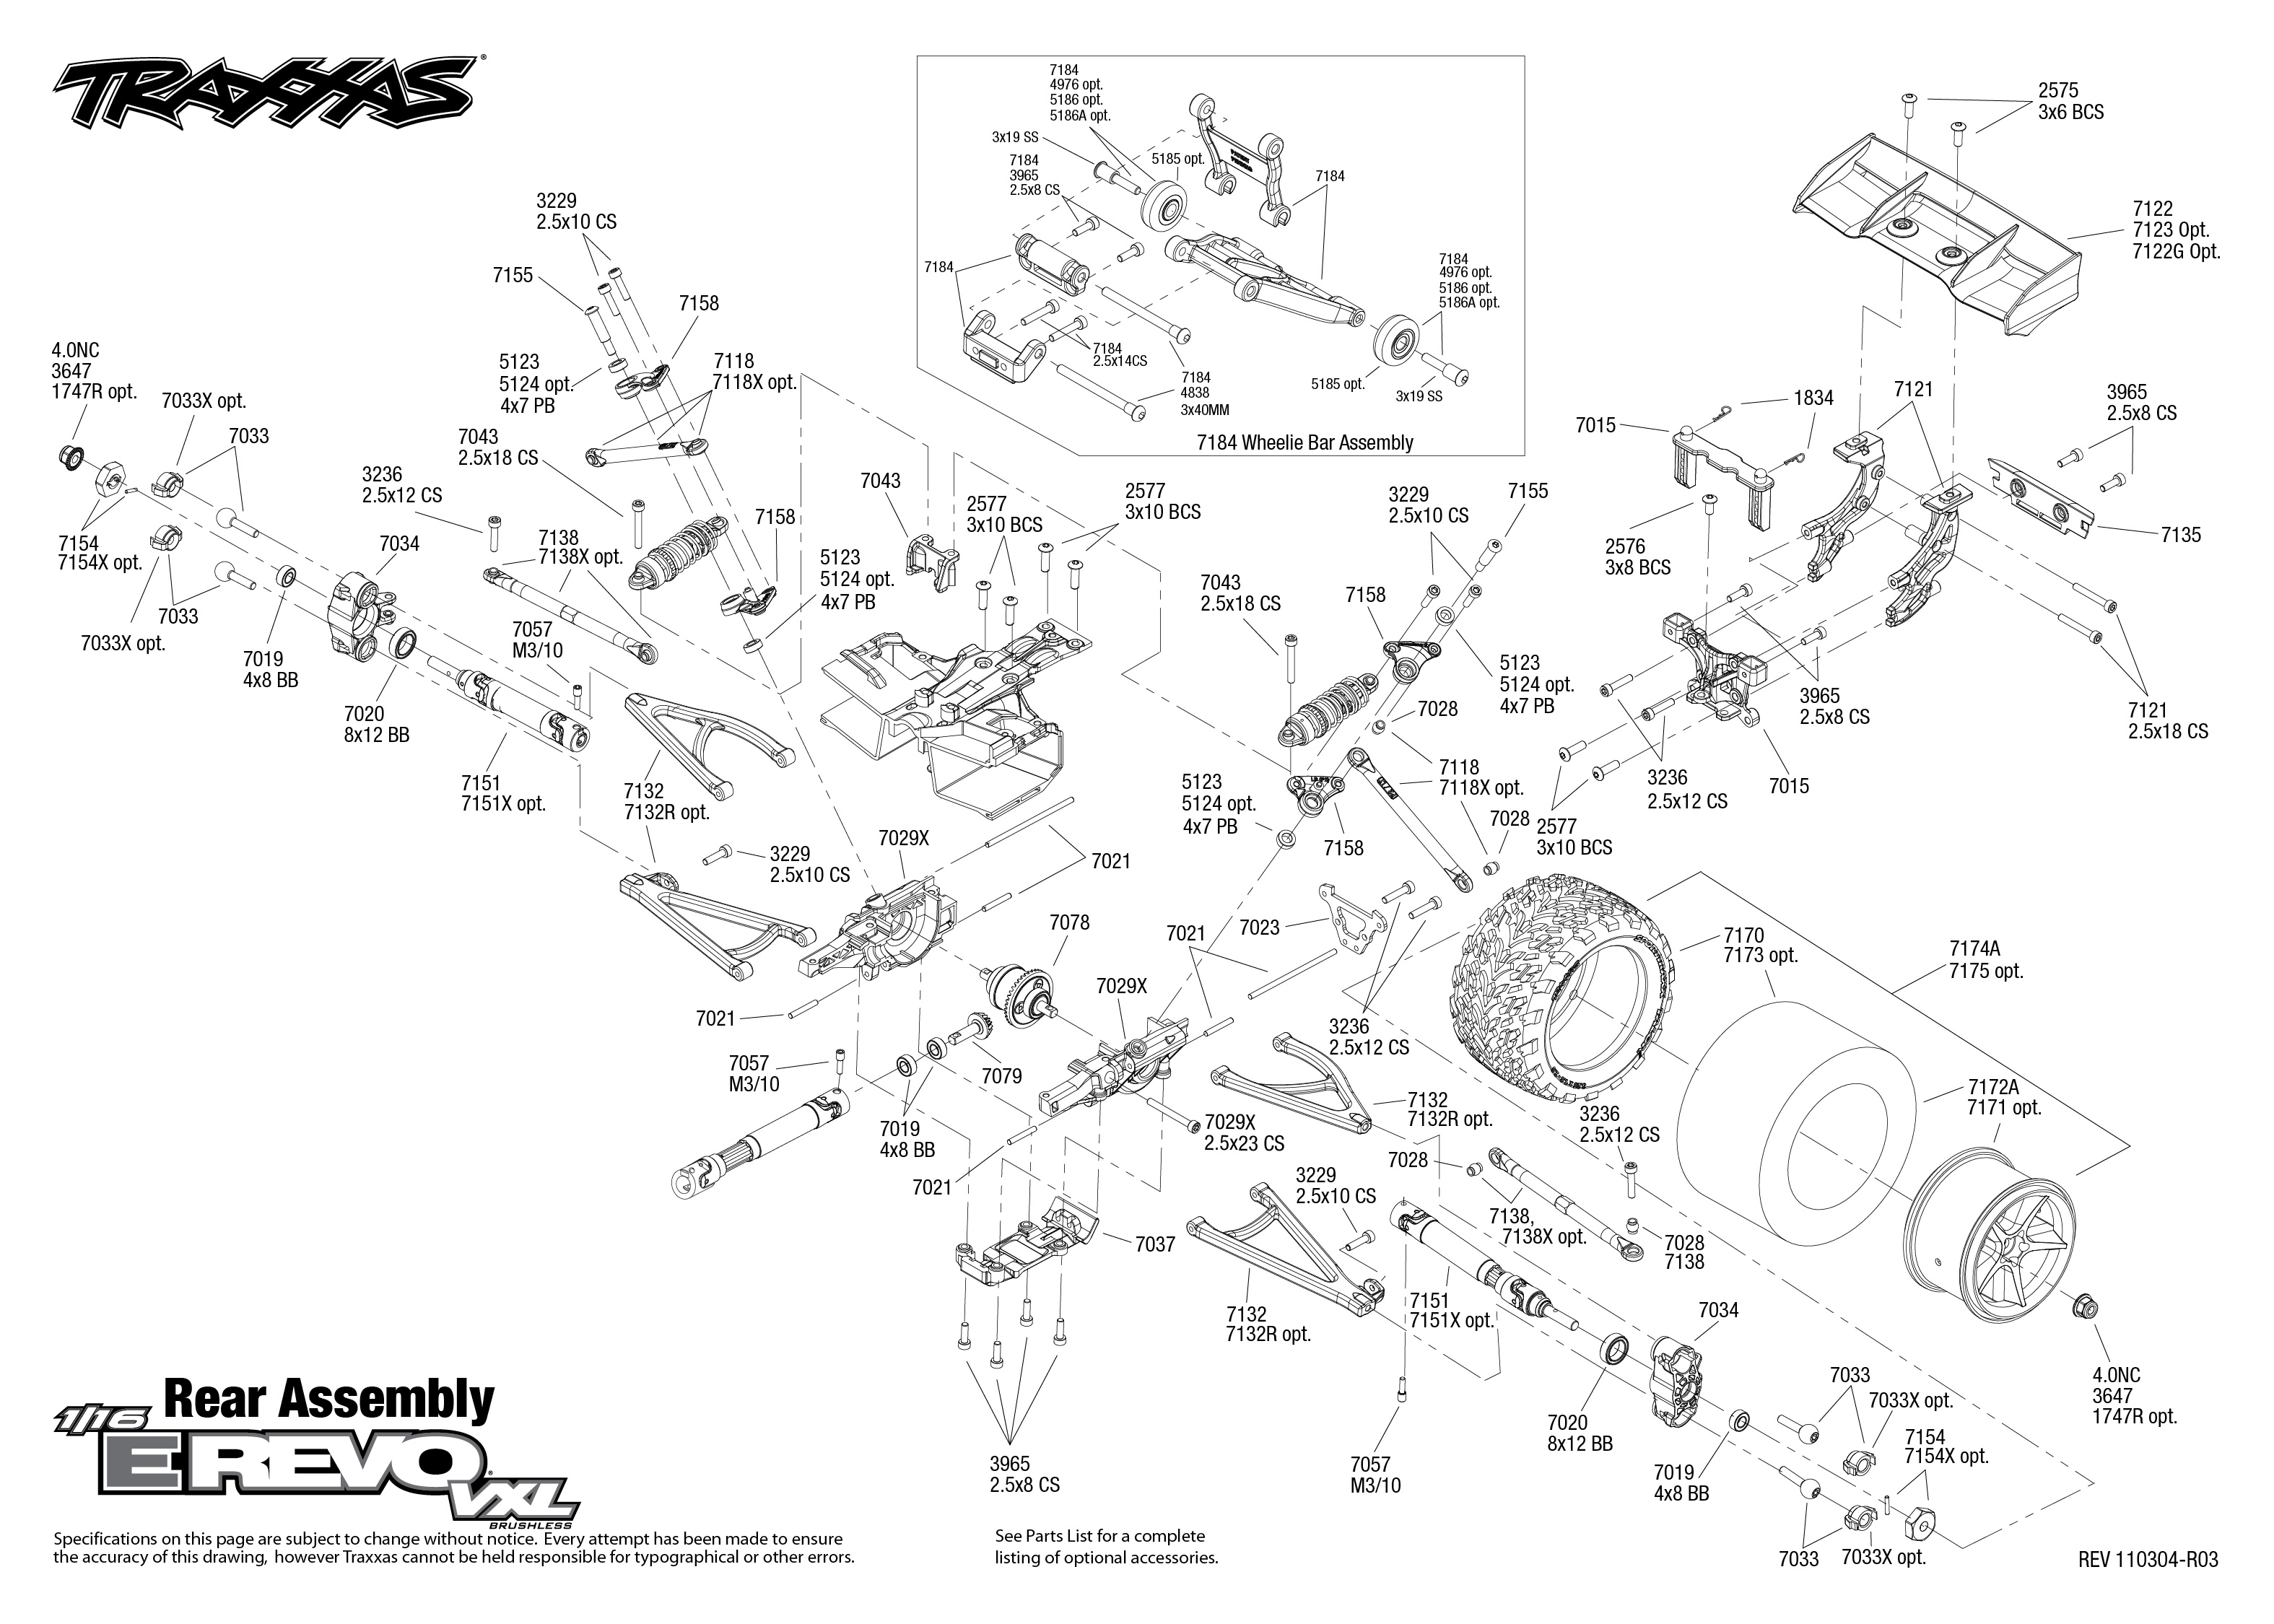 Traxxas Merv Rear Bulkhead Question